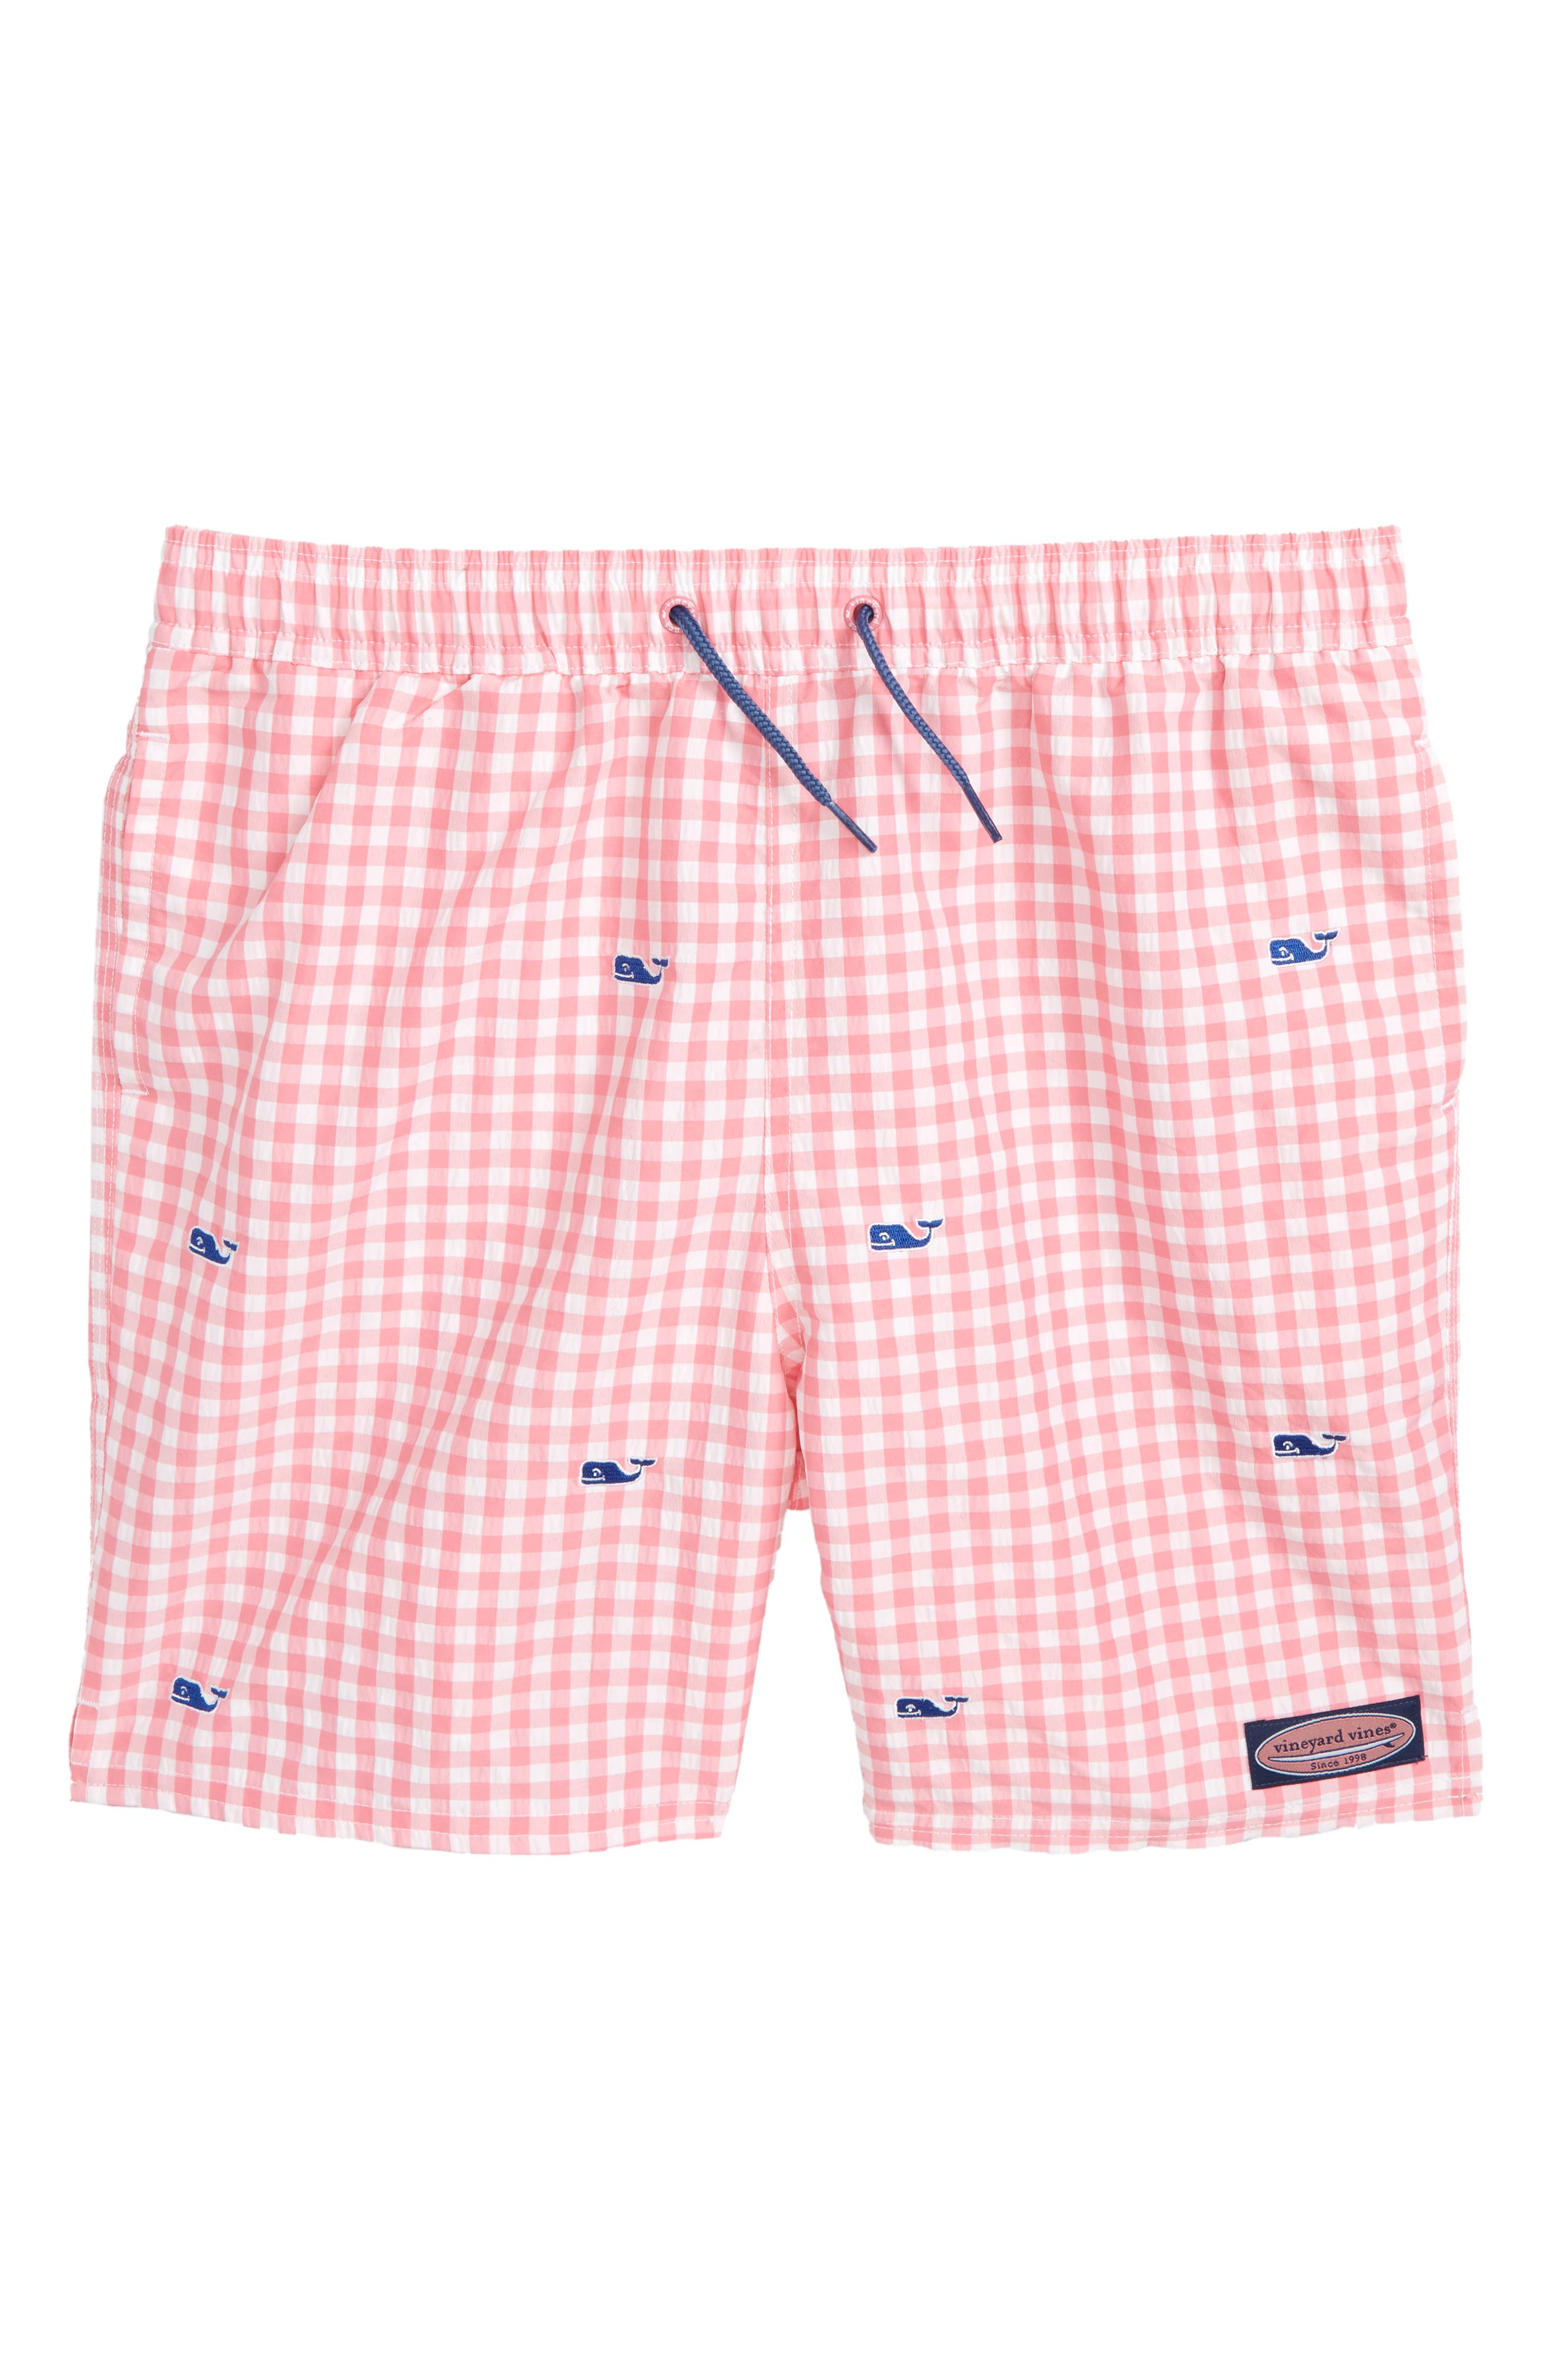 Embroidered Micro Gingham Check Swim Trunks,                         Main,                         color, Bahama Breeze